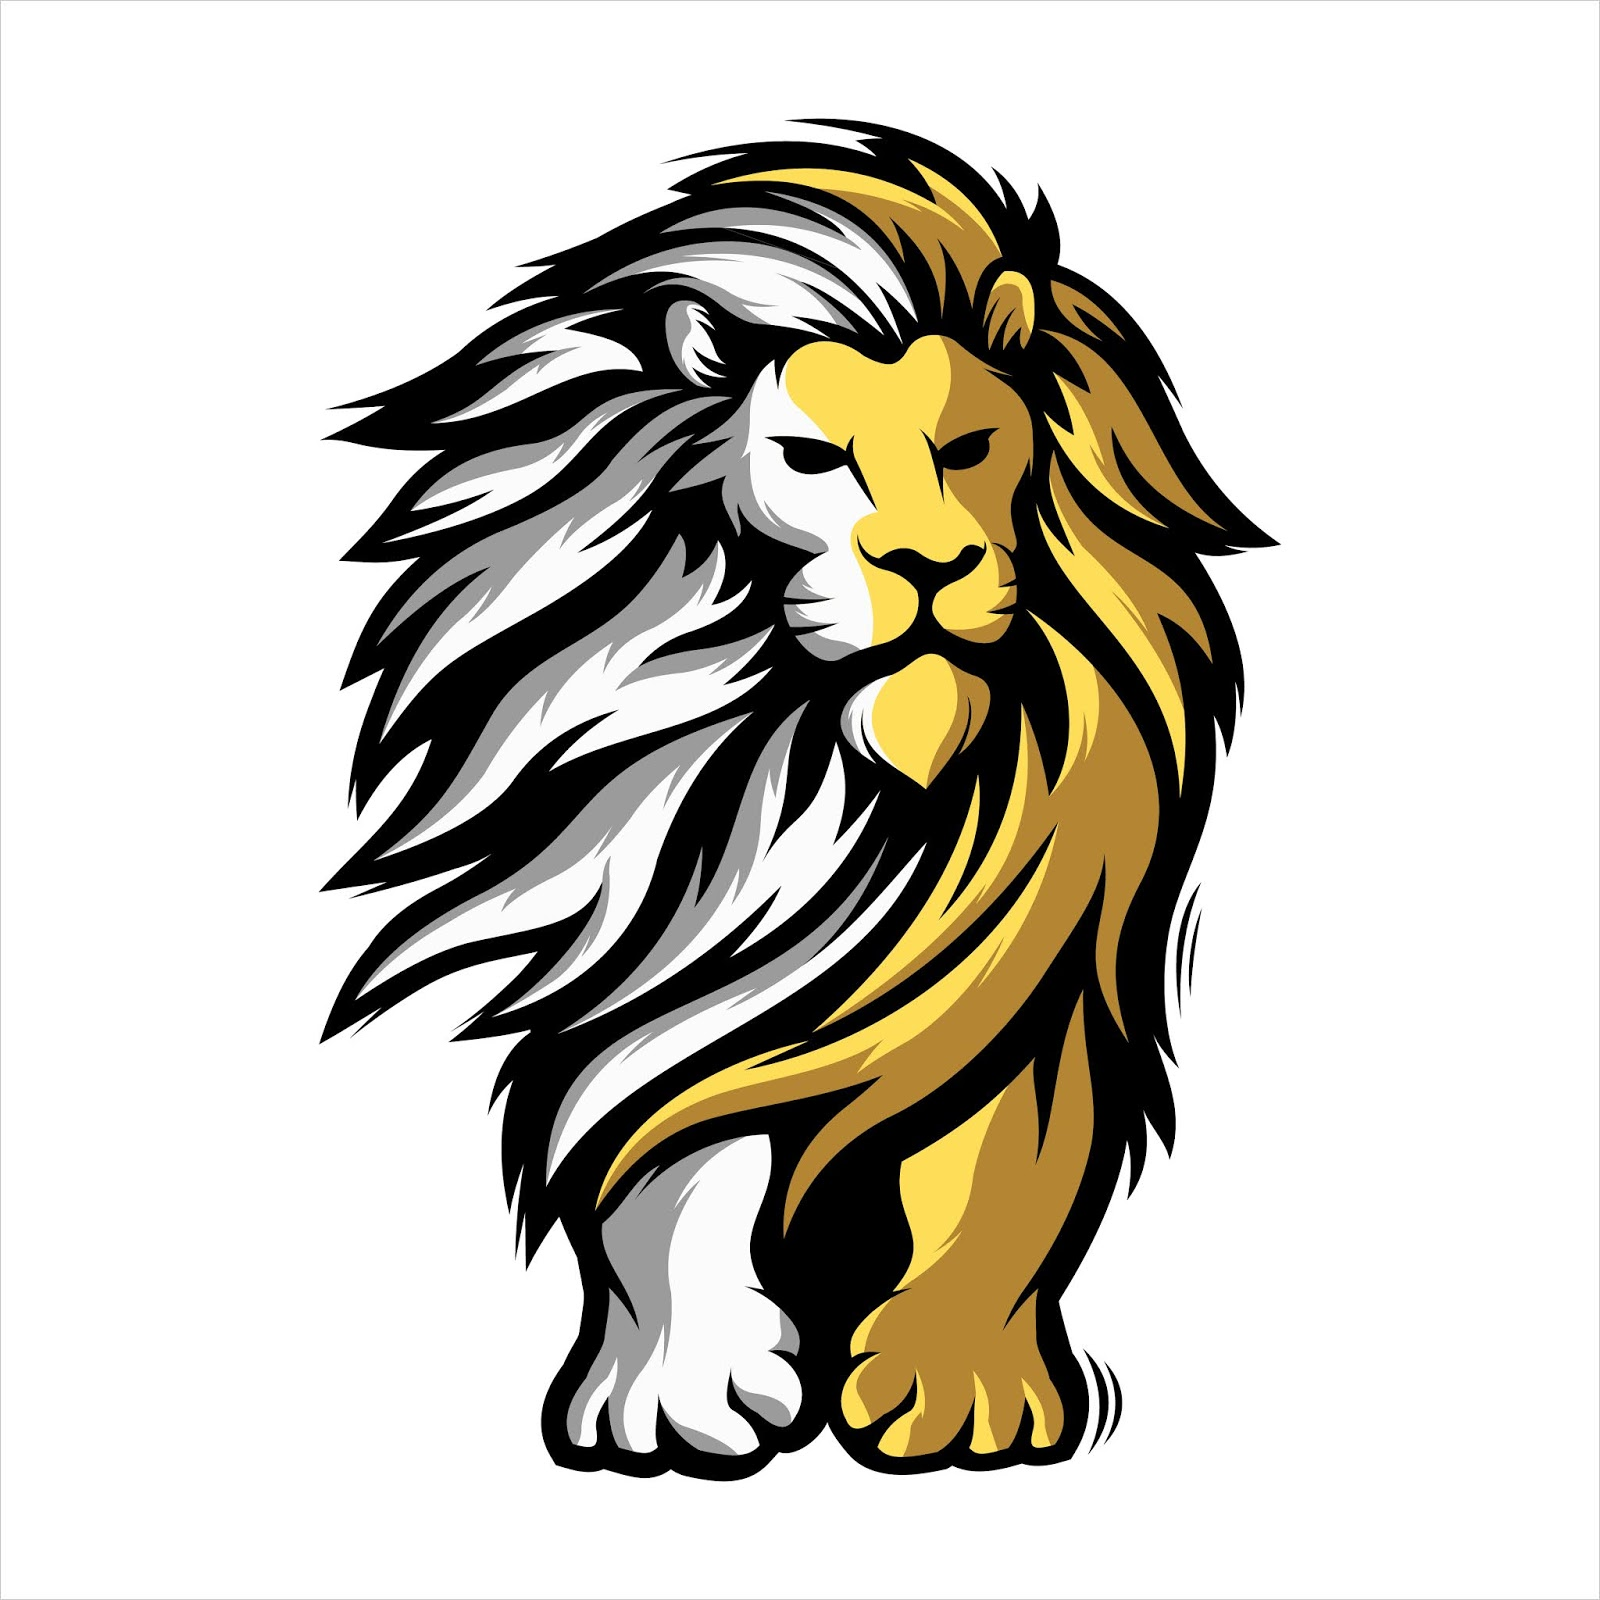 Lion Mascot Free Download Vector CDR, AI, EPS and PNG Formats